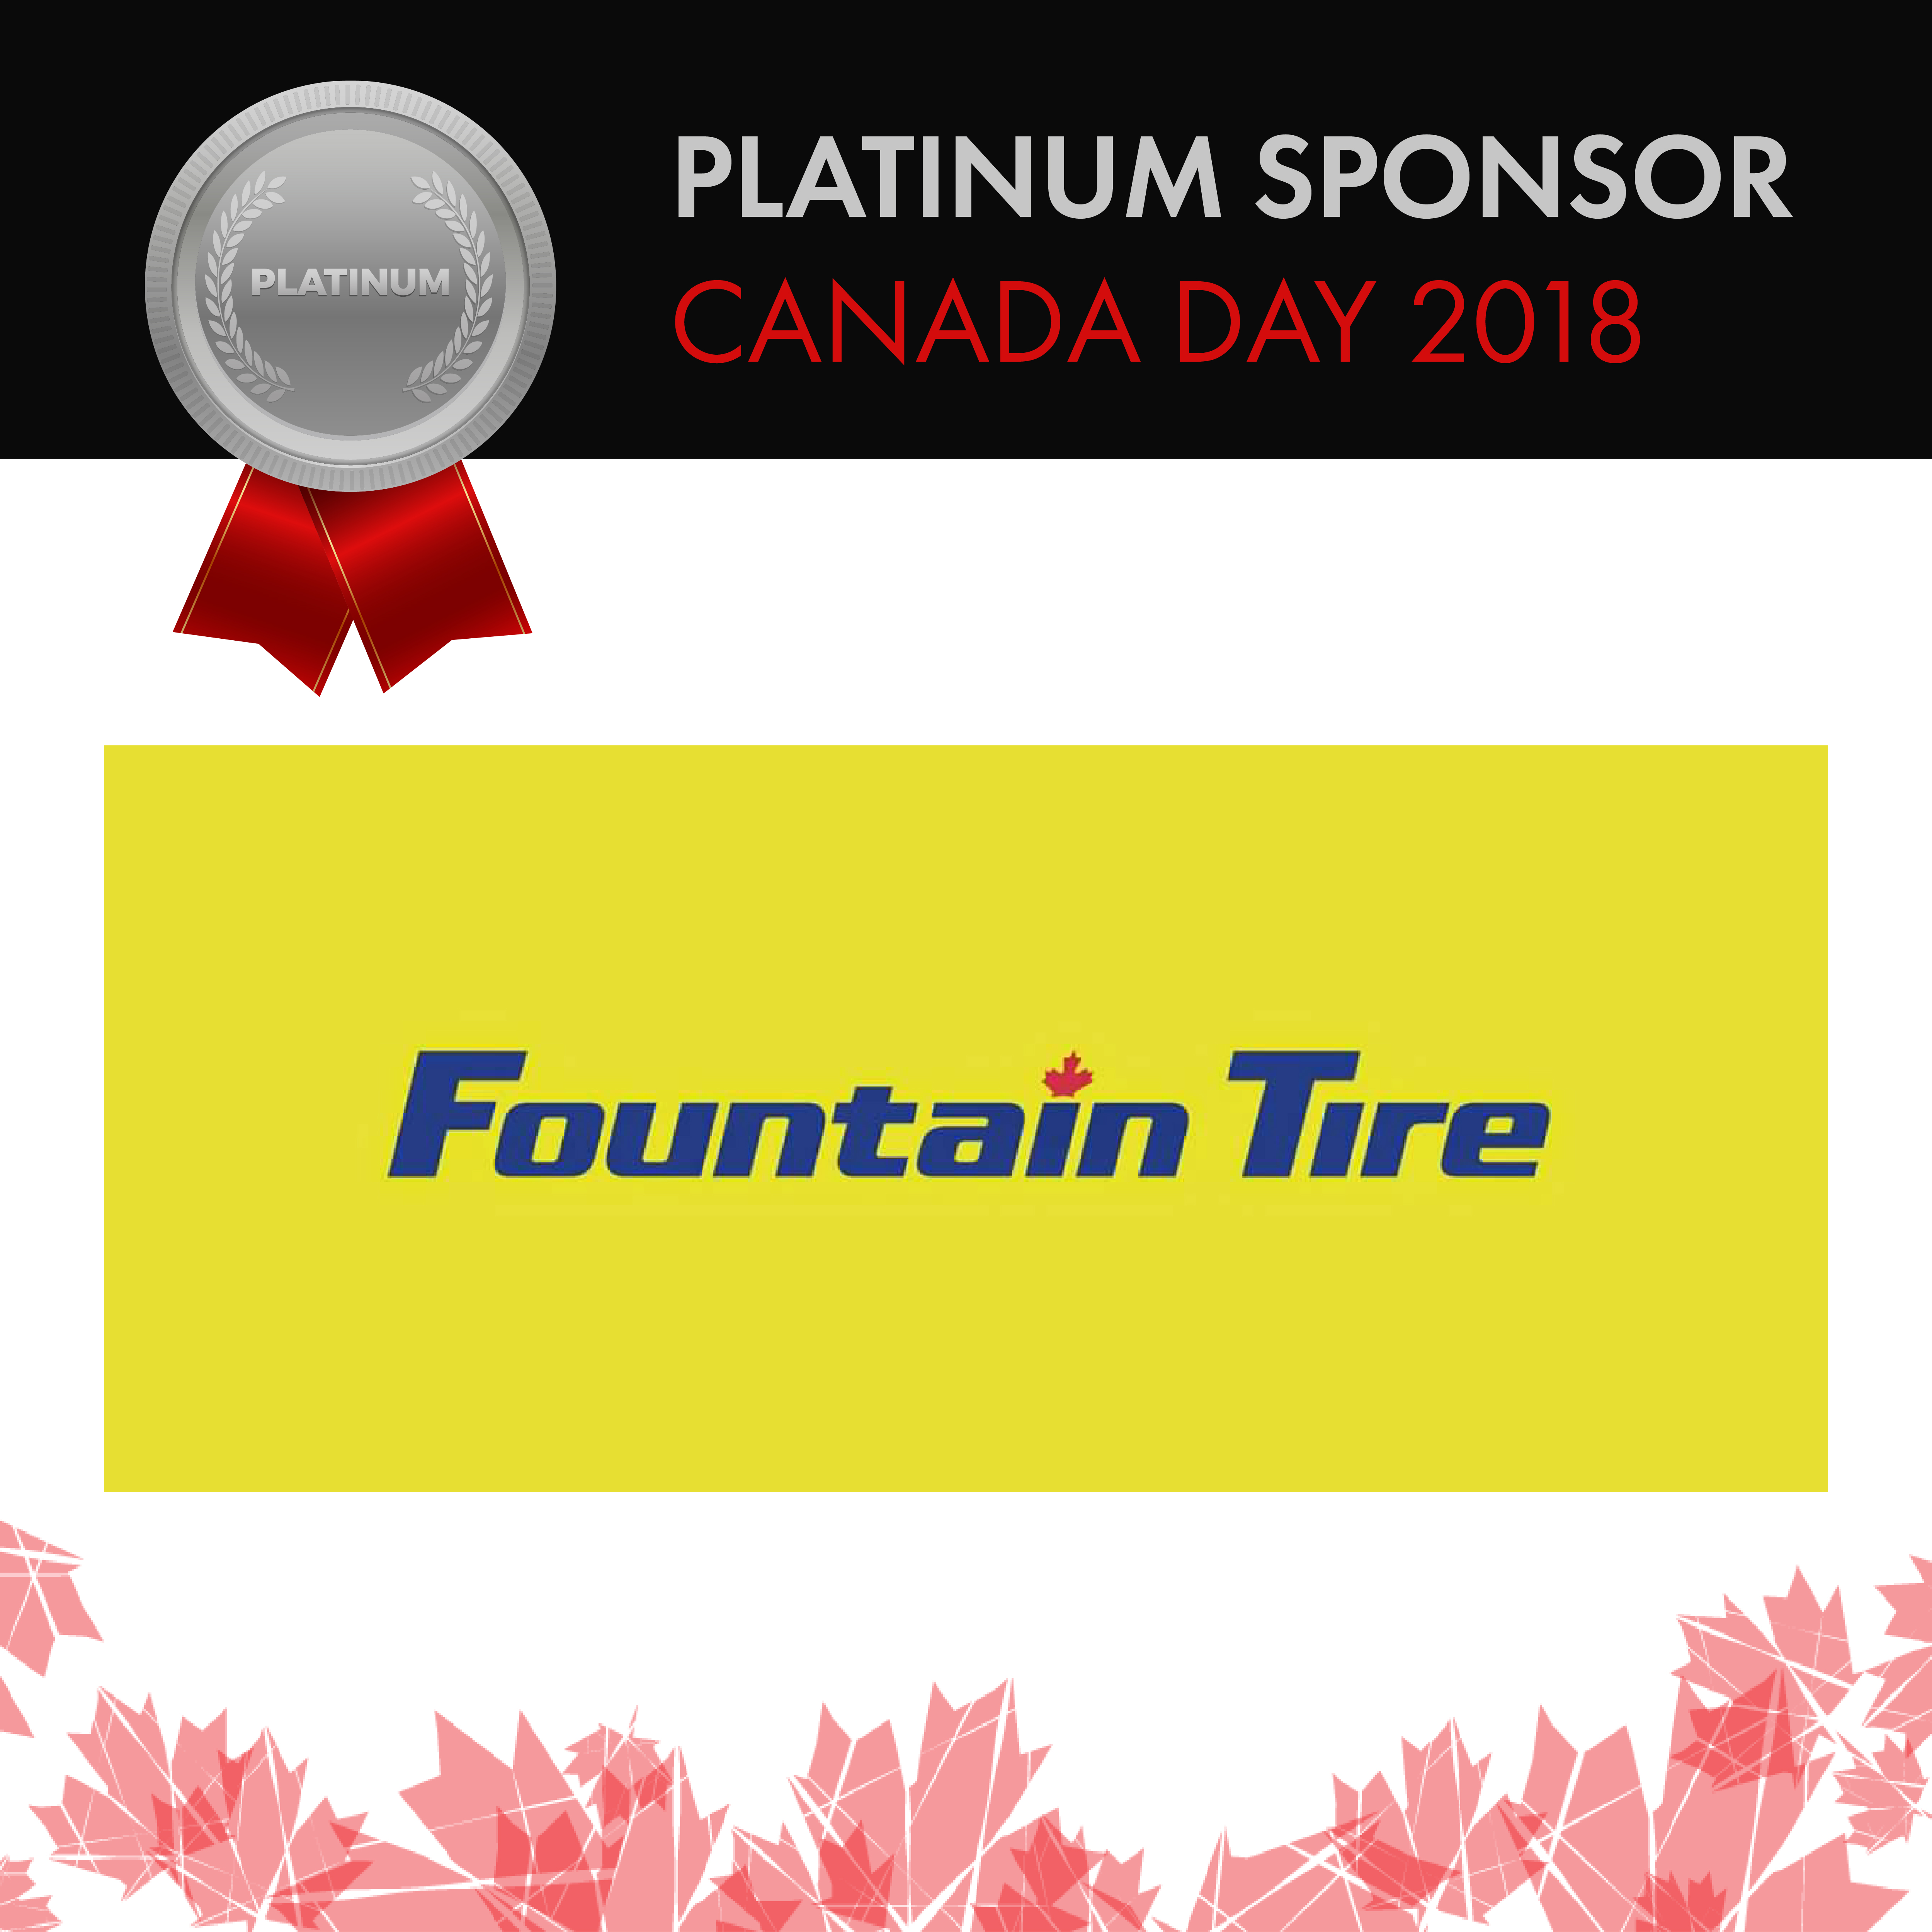 Platinum Sponsor Ad - Fountain Tire-01.jpg